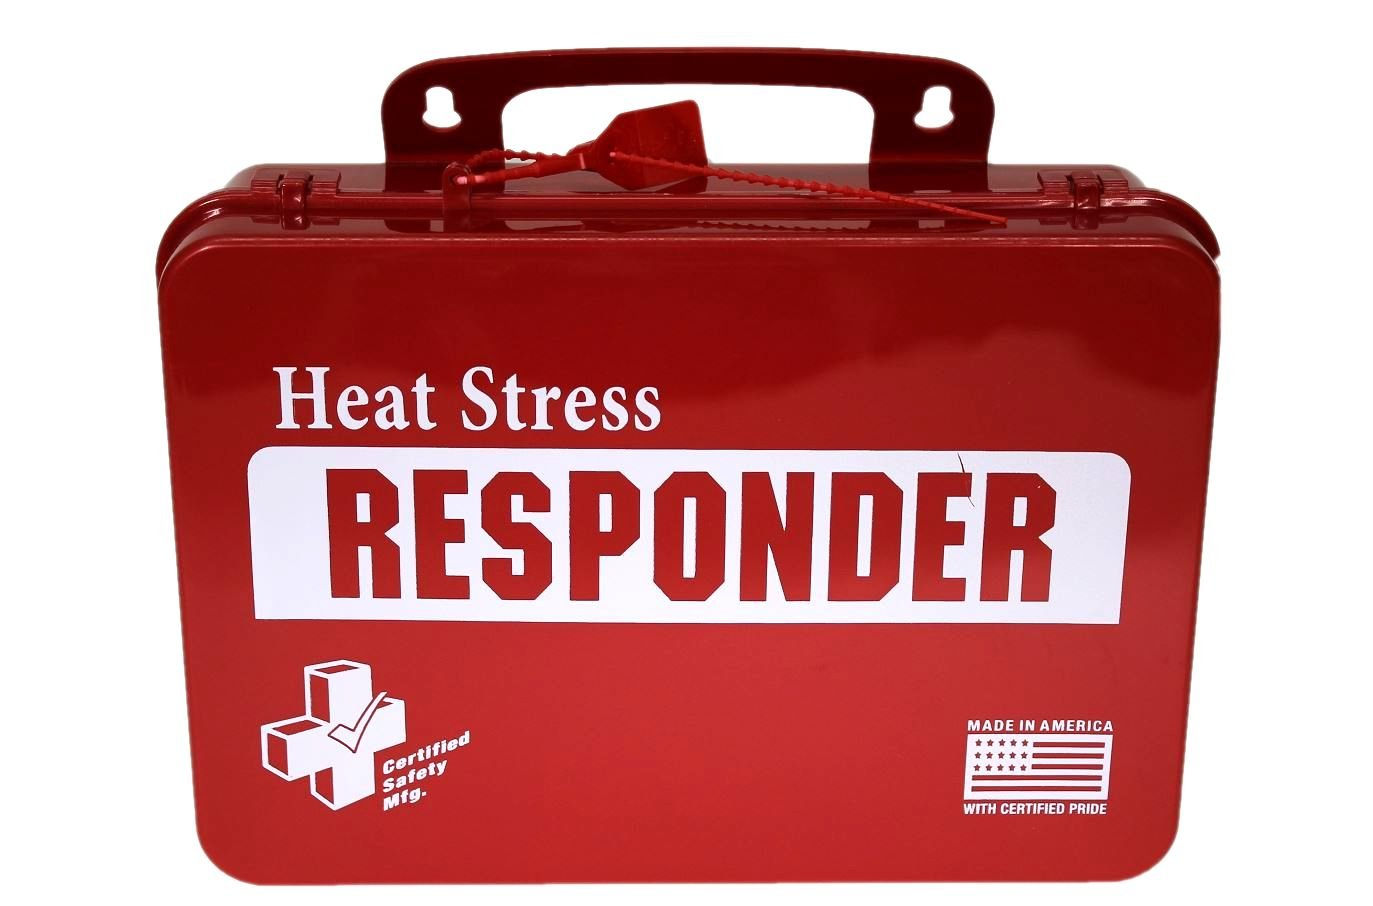 Certified Safety K613-040 18PR Heat Stress Responder Standard First Aid Kit, Poly Red by Certified Safety